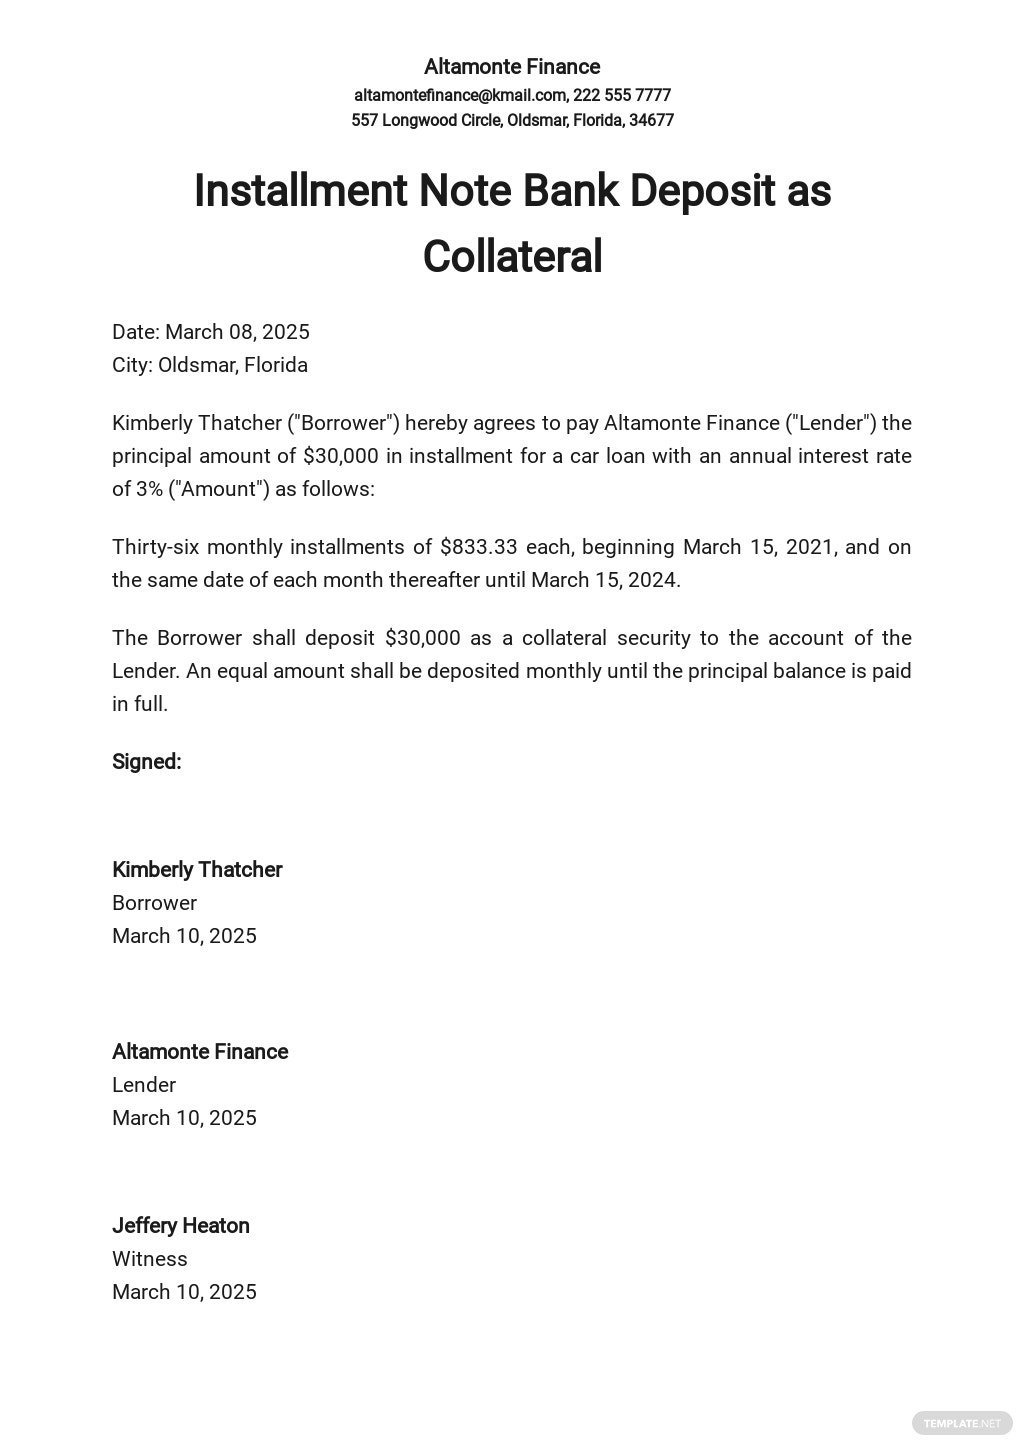 Installment Note Bank Deposit as Collateral Template.jpe